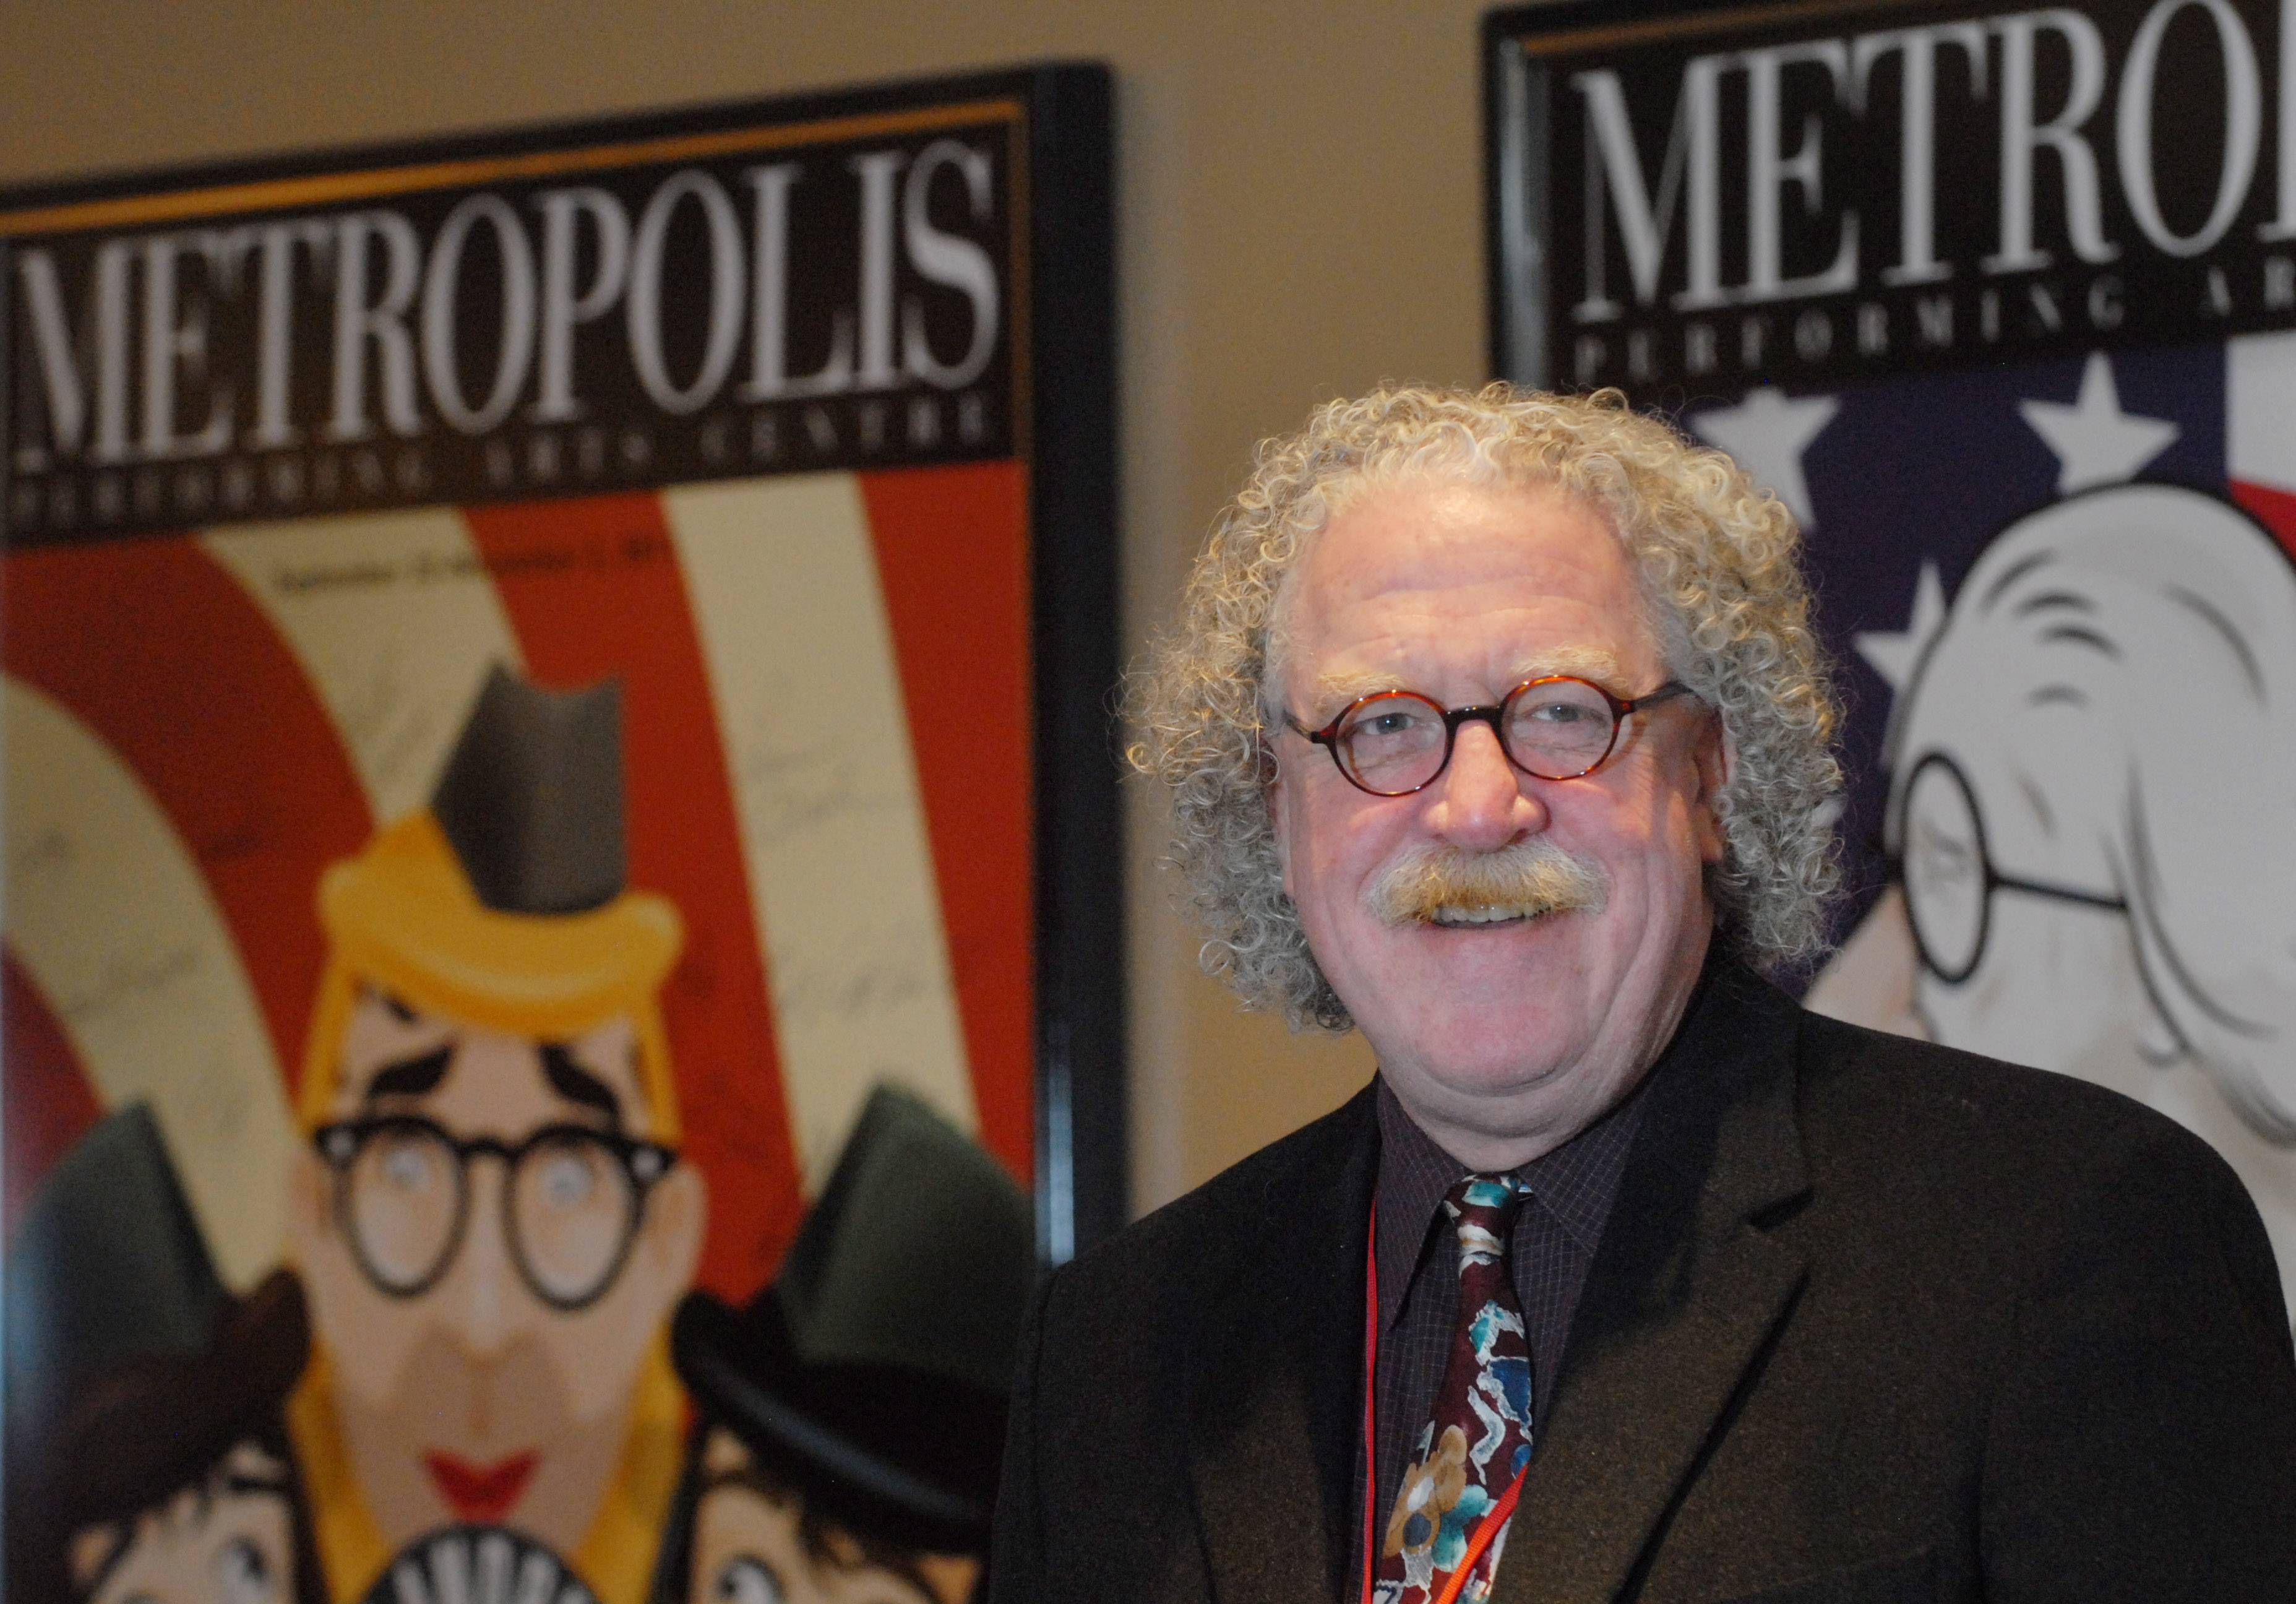 A permanent replacement is being sought for Charlie Beck, who served as executive director of the Metropolis Performing Arts Centre in Arlington Heights for 2½ years.